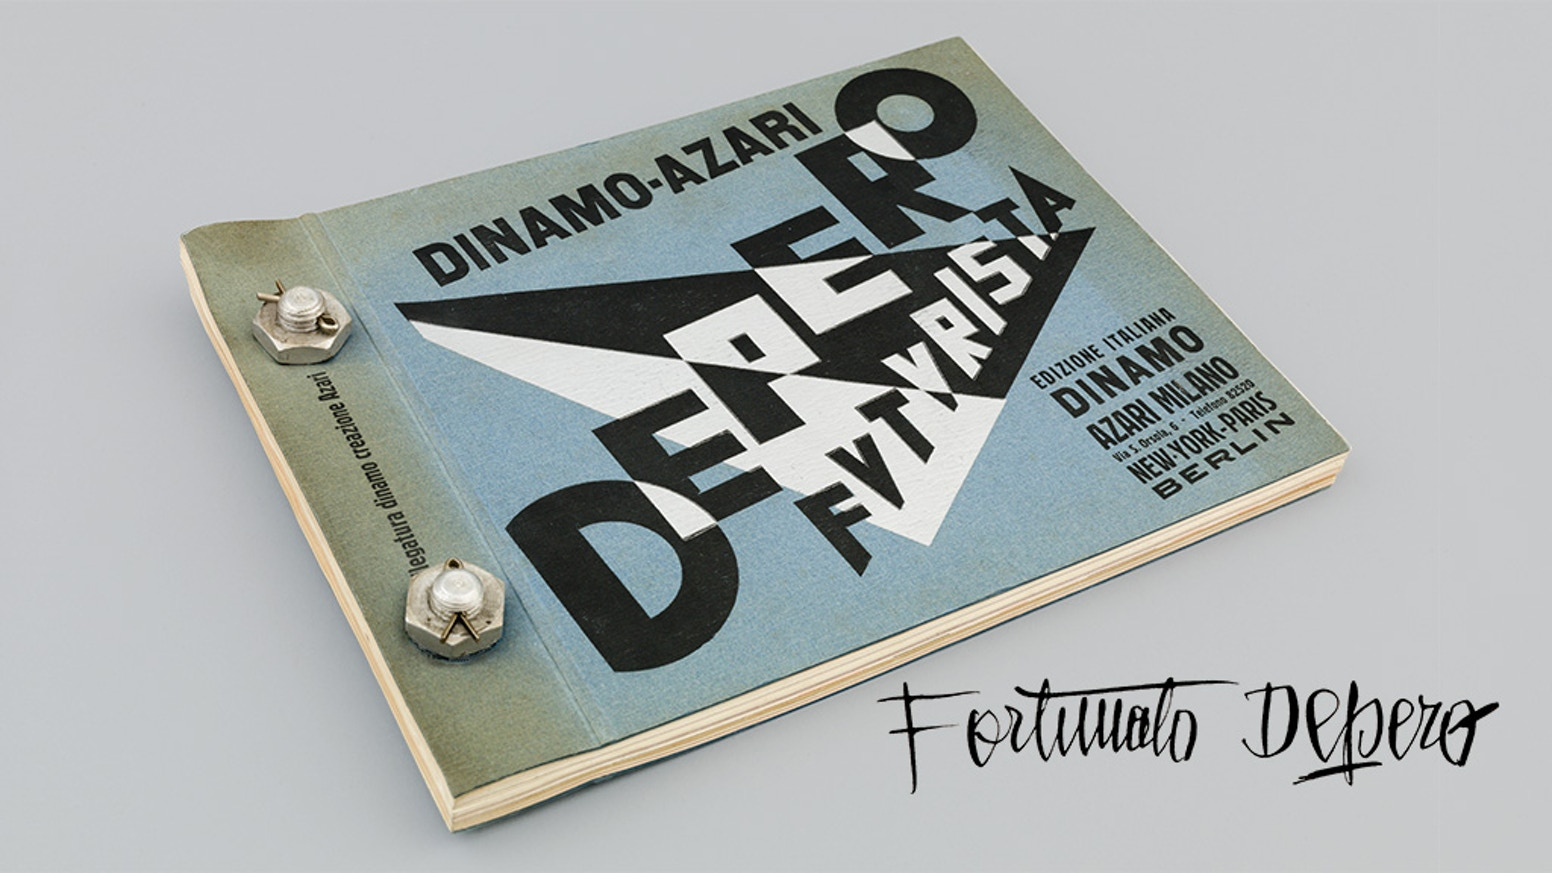 Help us publish the first exact copy of Fortunato Depero's 1927 iconic work of avant-garde graphic design and book-making.